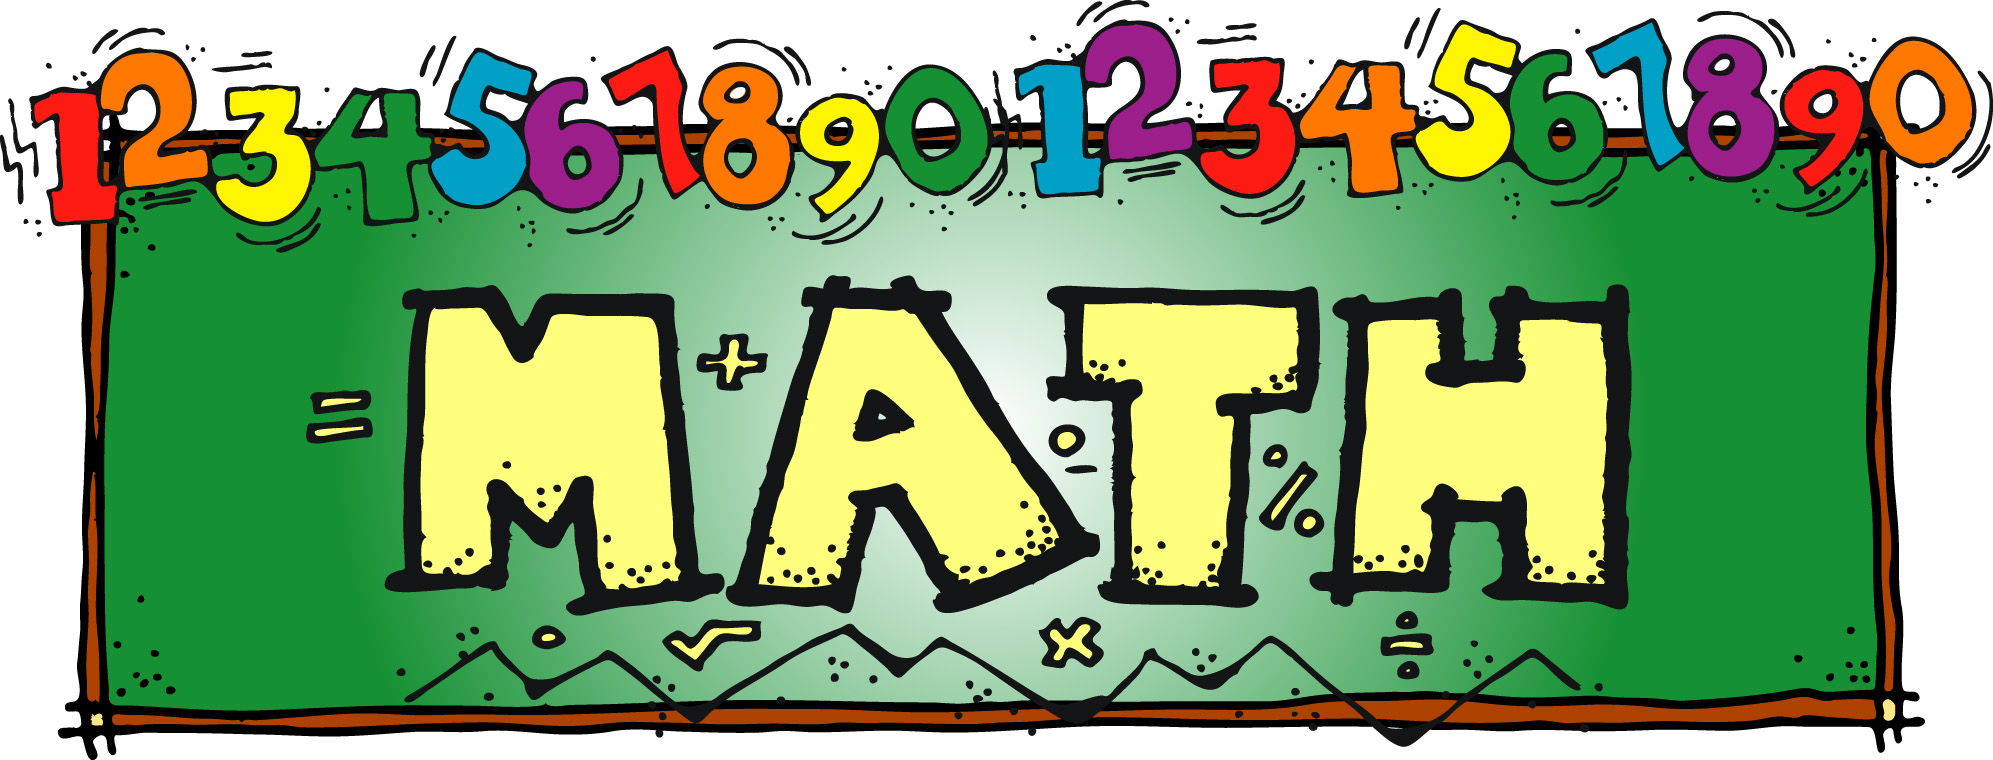 Mathematics clipart #12, Download drawings